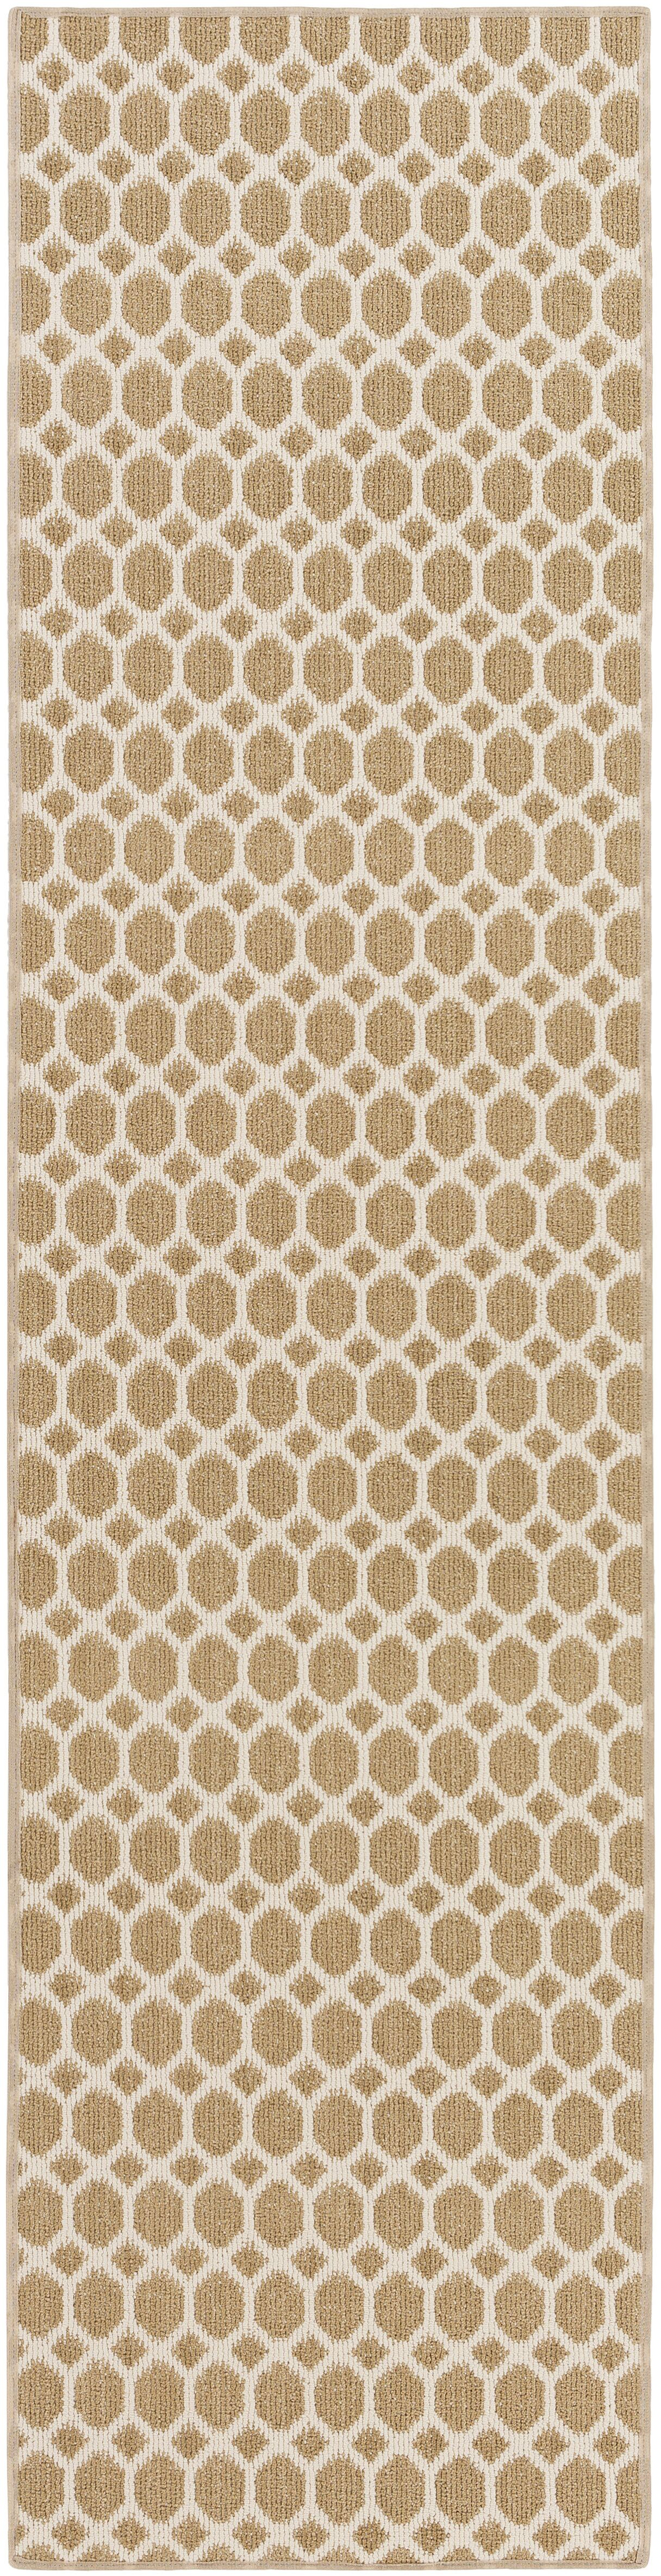 Casper Neutral Indoor/Outdoor Area Rug Rug Size: Runner 2' x 12'